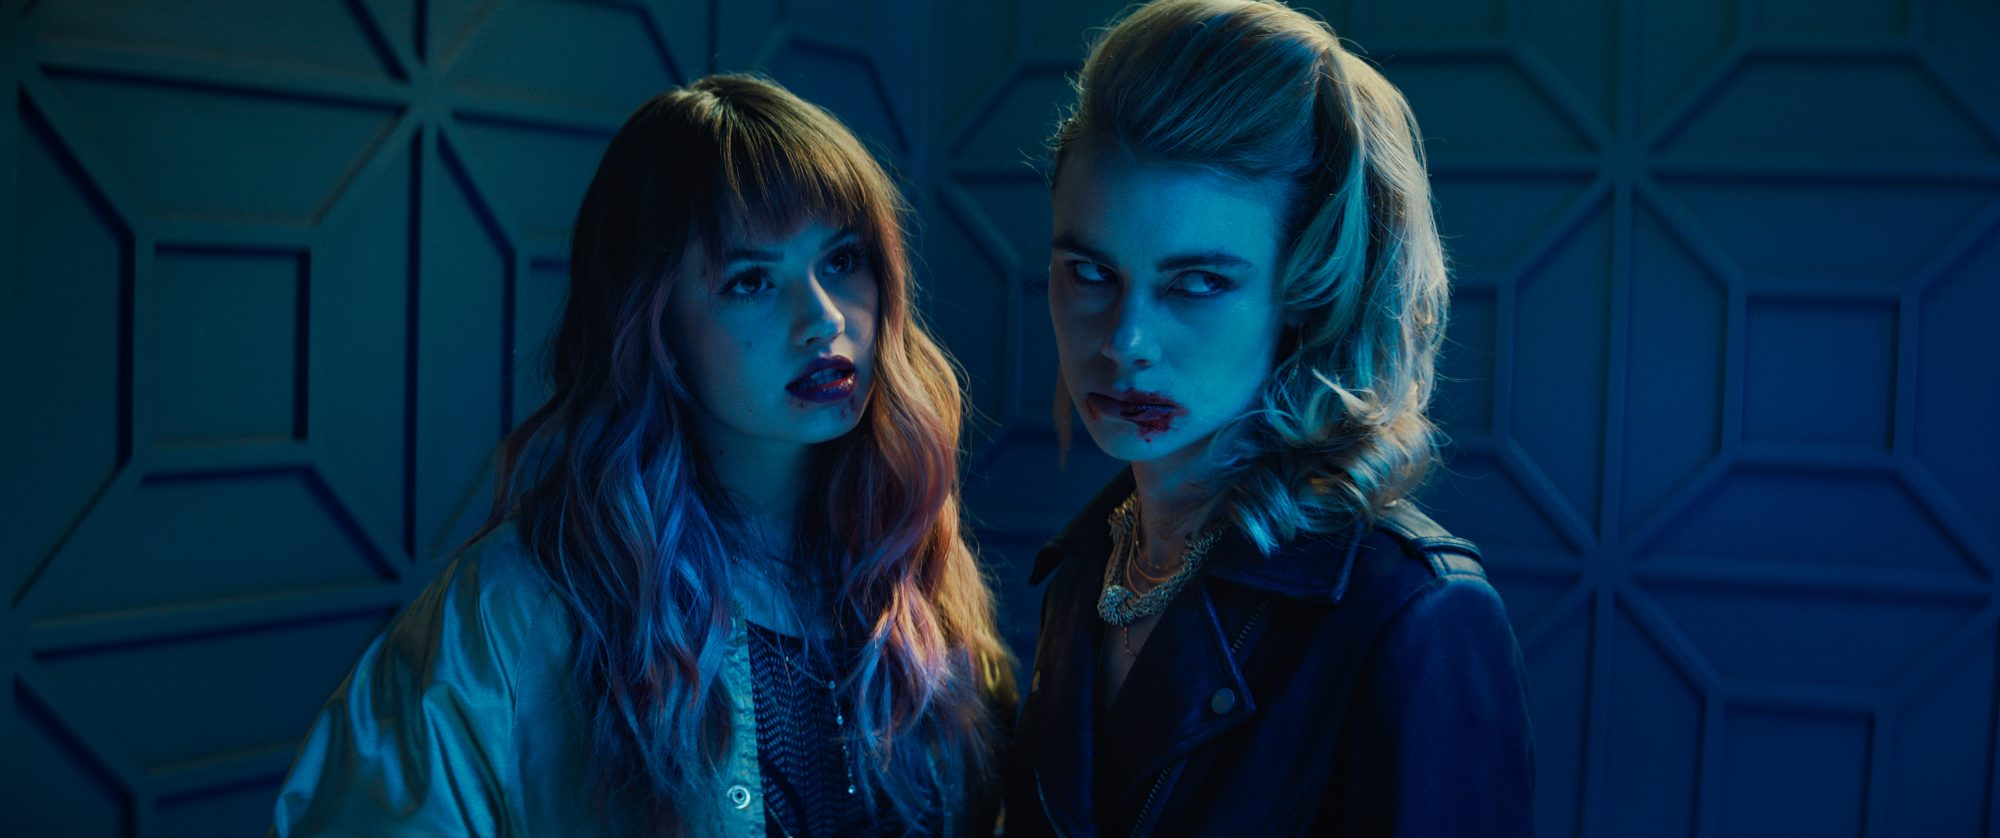 NIGHT TEETHDebby Ryan as Blaire and Lucy Fry as Zoe. Netflix © 2021